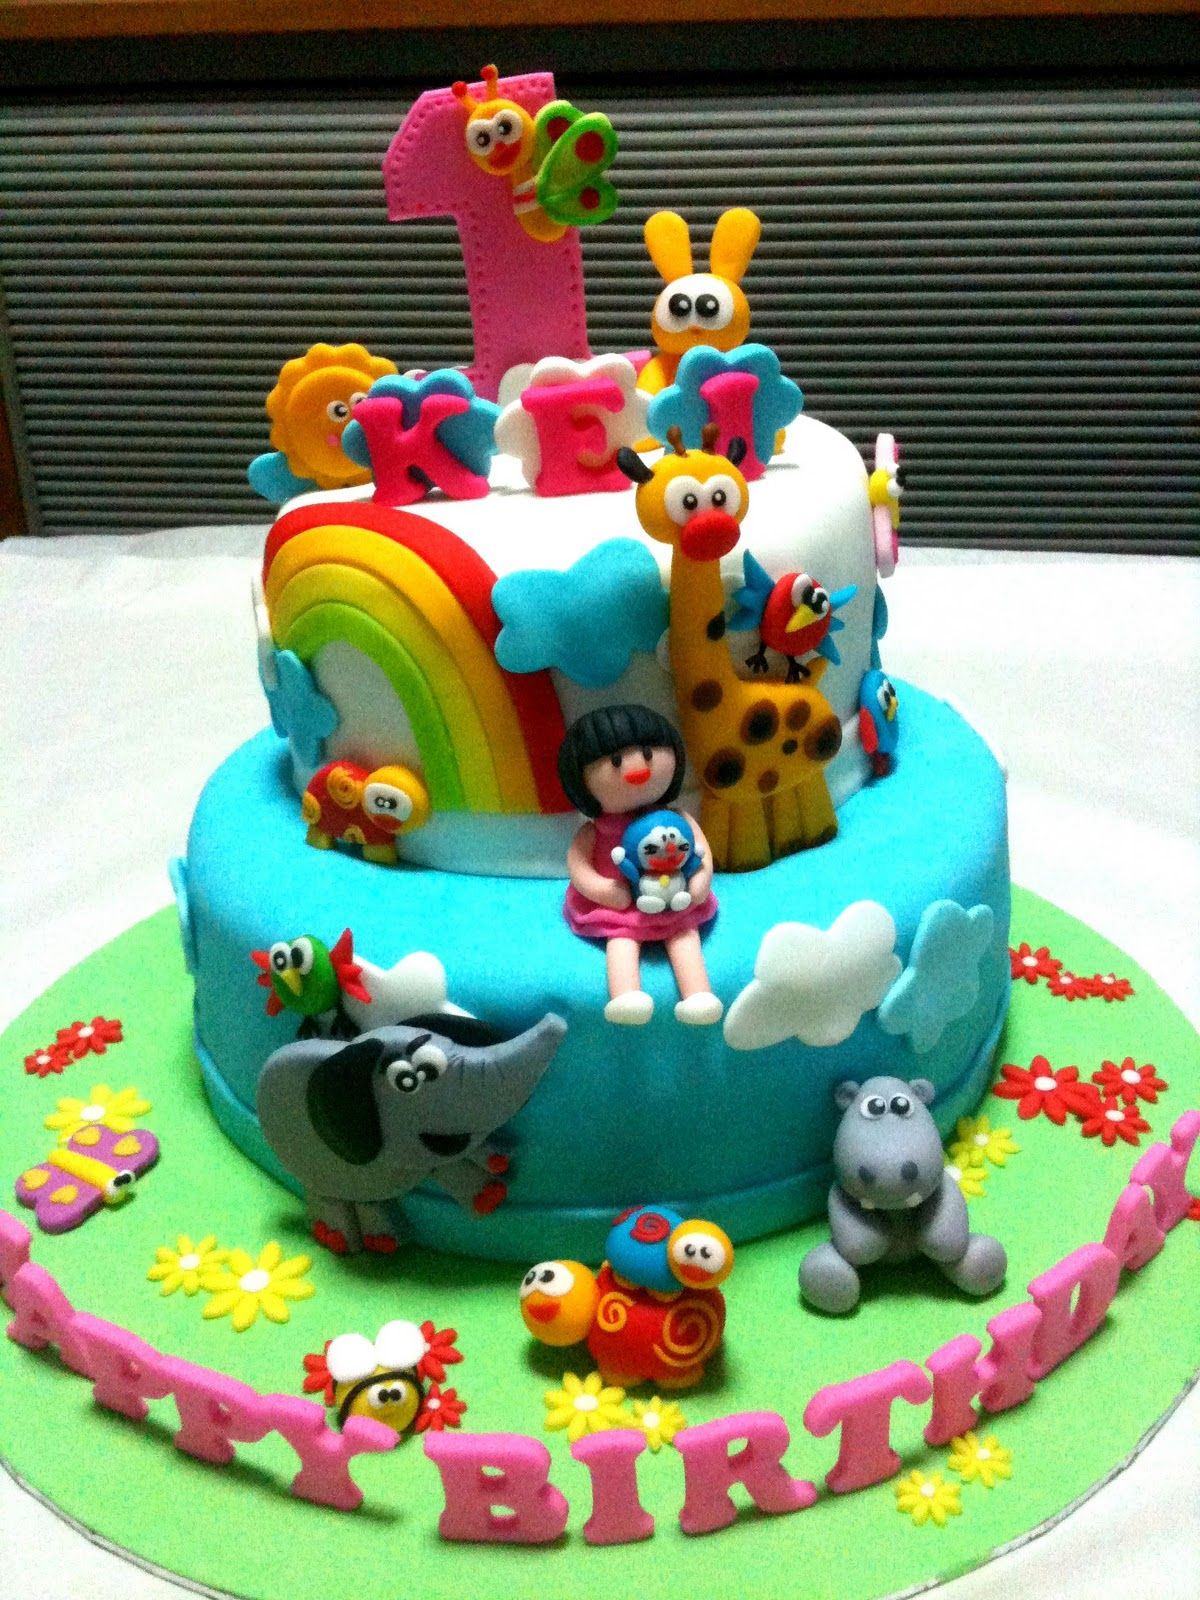 baby first birthday cake oven creations happy 1st birthday kei part 1 1425